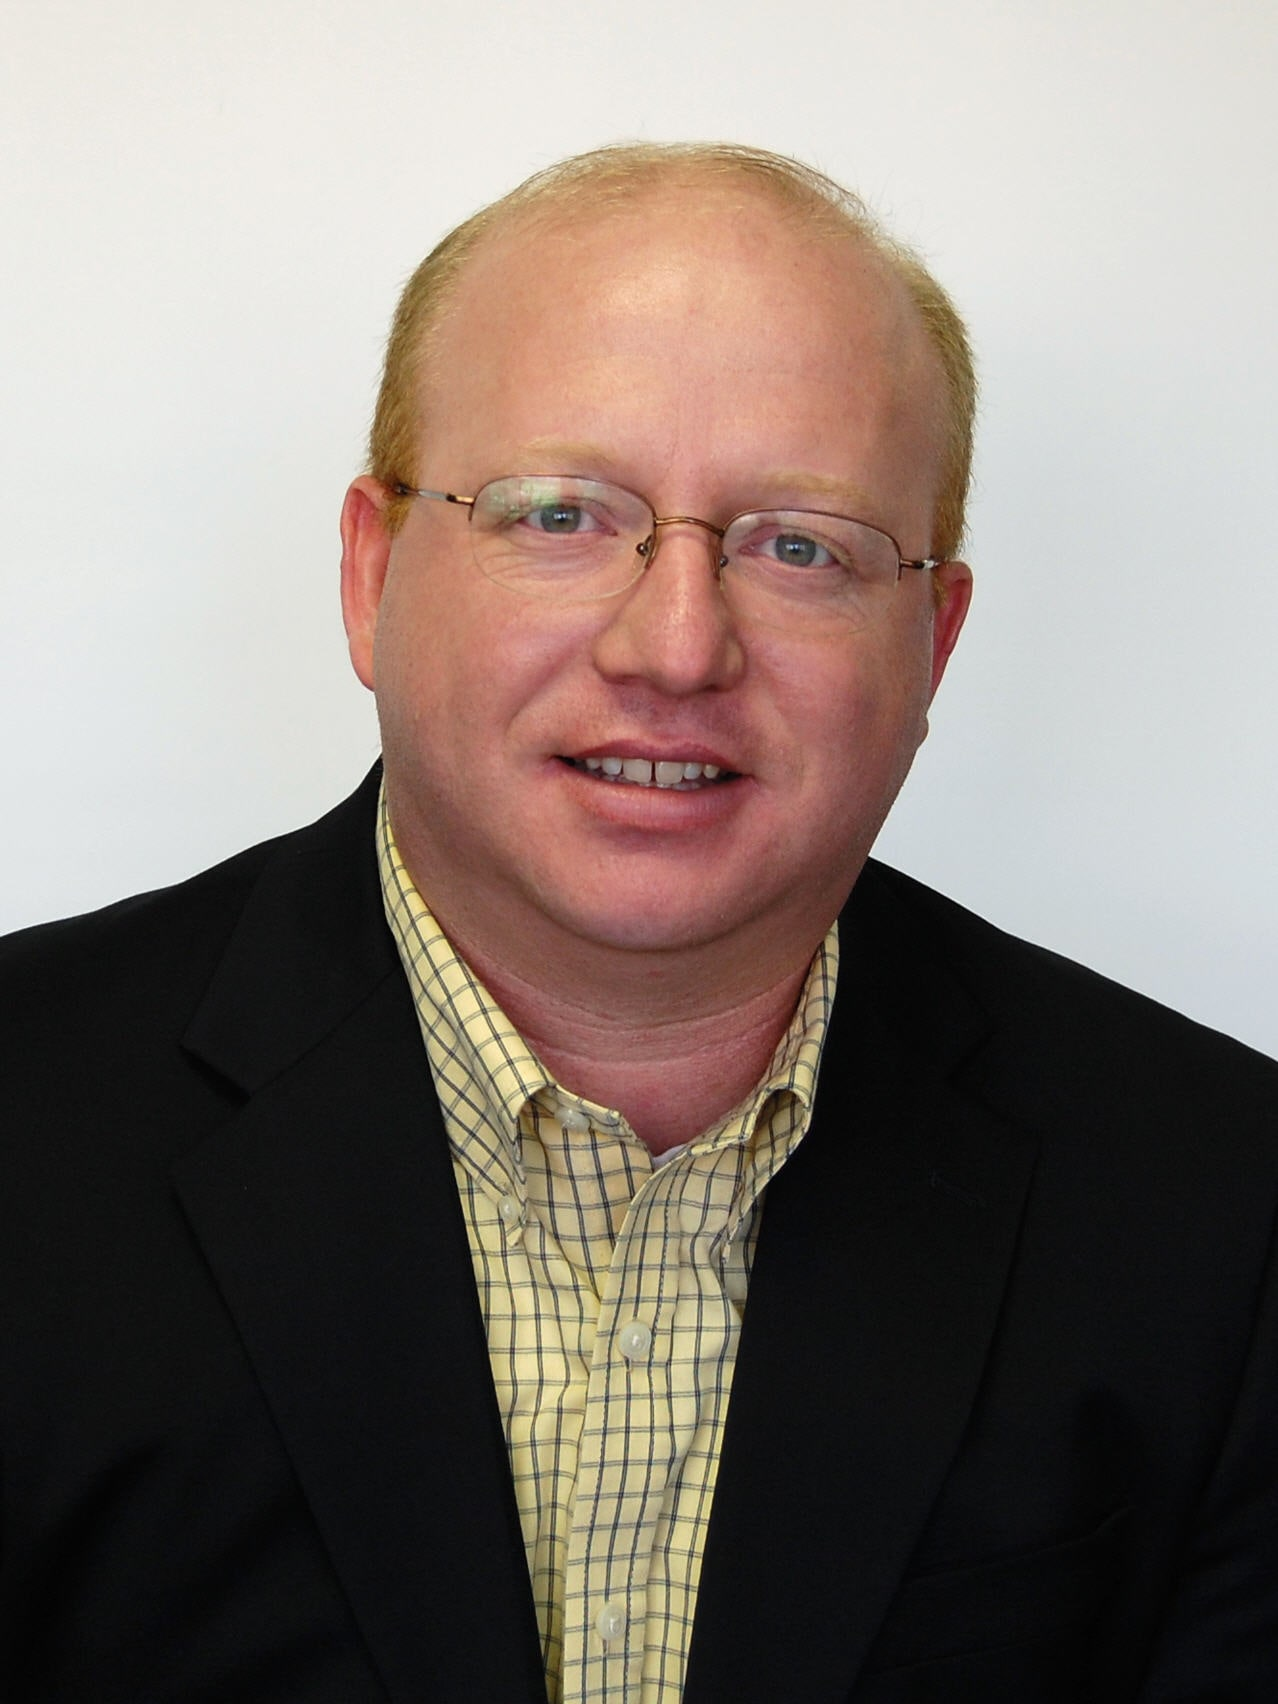 "MidwayUSA is excited to announce the promotion of Max Dunlap to Vice President of Logistics and Customer Support. Dunlap has been with MidwayUSA for ten years, previously serving as the Logistics Operations Manager.  Prior to joining MidwayUSA, Dunlap worked in the automotive industry.  Max holds a finance degree from the University of Missouri.   ""I'm excited to assume this senior leadership role and have a direct impact on Customer satisfaction,"" said Dunlap.  ""I'm a Customer too. I know how important it is to listen, learn, and respond to Customers' needs. At MidwayUSA, Customers come first. They are our top priority and I'm up for the challenge.""   In his new position as Vice President of Logistics and Customer Support, Dunlap will be responsible for all warehouse operations, including shipping and receiving, as well as Customer support services.  He will report to Matt Fleming, MidwayUSA President.   ""For the past ten years, Max has been an outstanding Manager of our Logistics department; always eager to pursue new opportunities and able to exceed our expectations. He will do a great job as our new Vice President of Logistics and Customer Support and we welcome him as the newest member of our Senior Leadership Team,"" said Fleming.  ""He is results oriented, has great attention to detail, is able to get things done, and is a great team player who will create tremendous value for our Stakeholders.""     For more information about MidwayUSA careers, please visit https://www.midwayusa.com/jobs-in-missouri for all open positions."